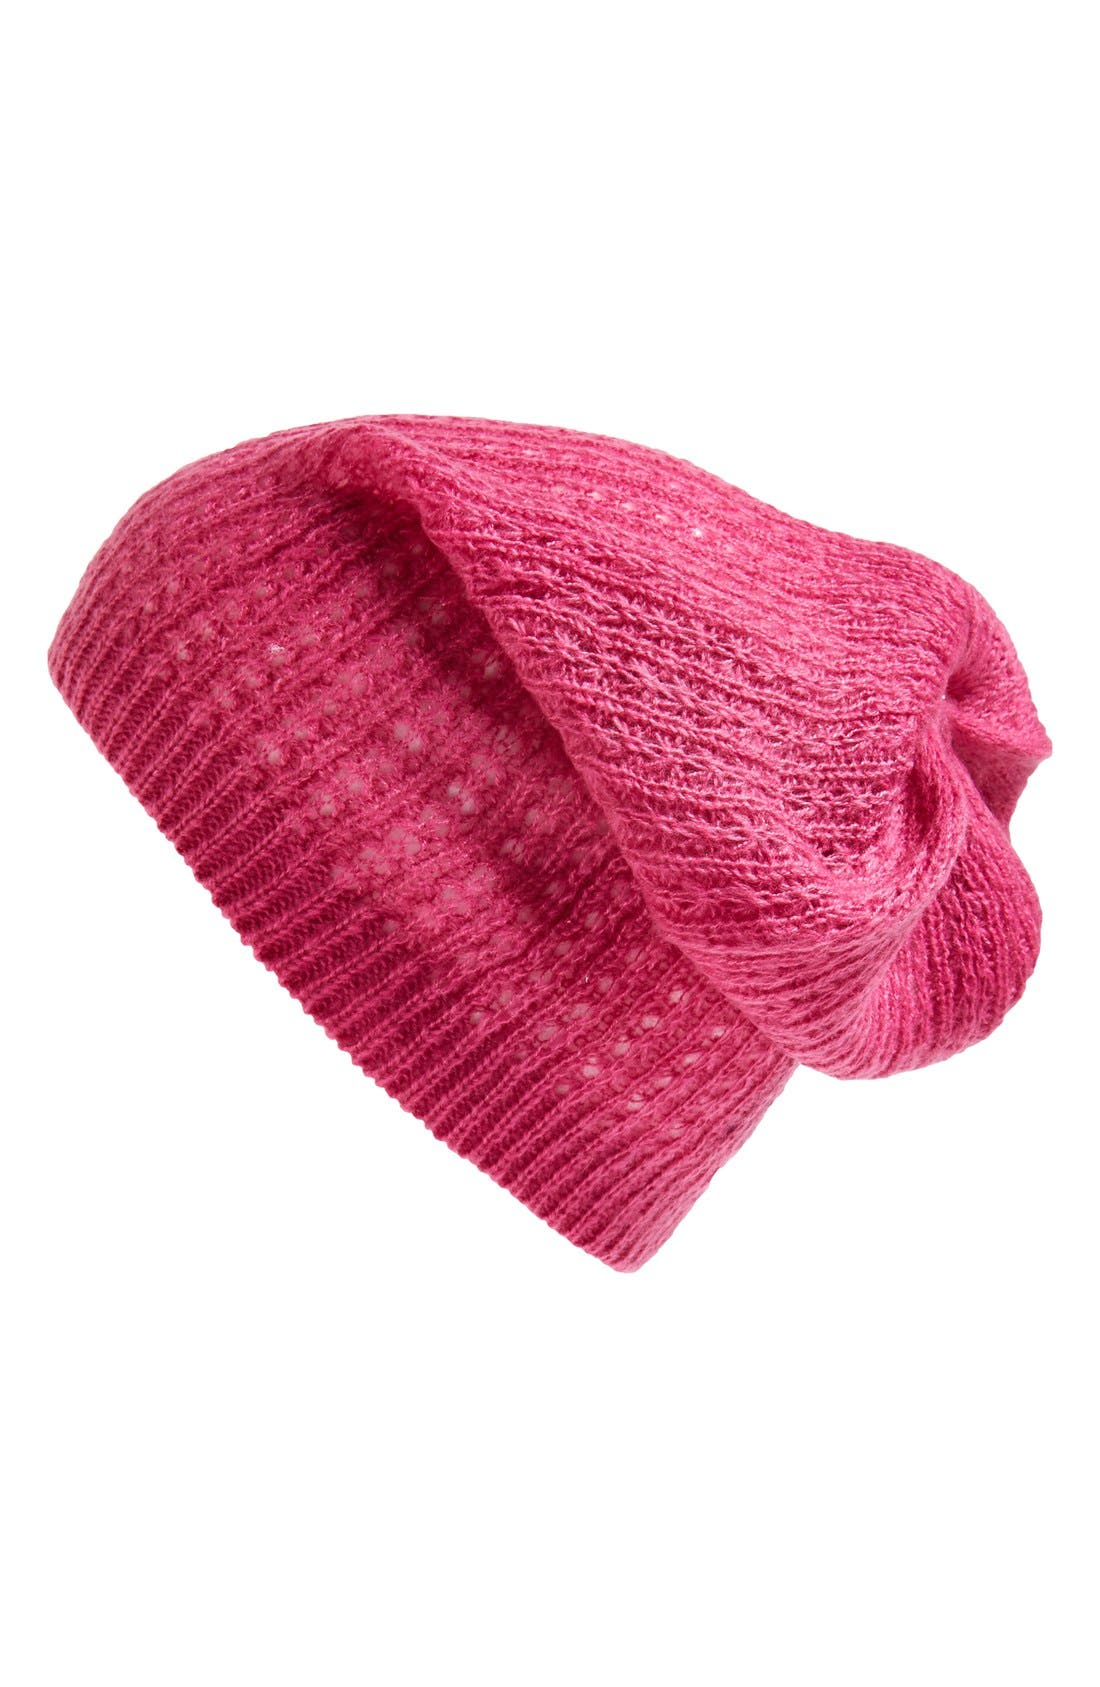 Alternate Image 1 Selected - Tildon Waffle Knit Slouch Hat